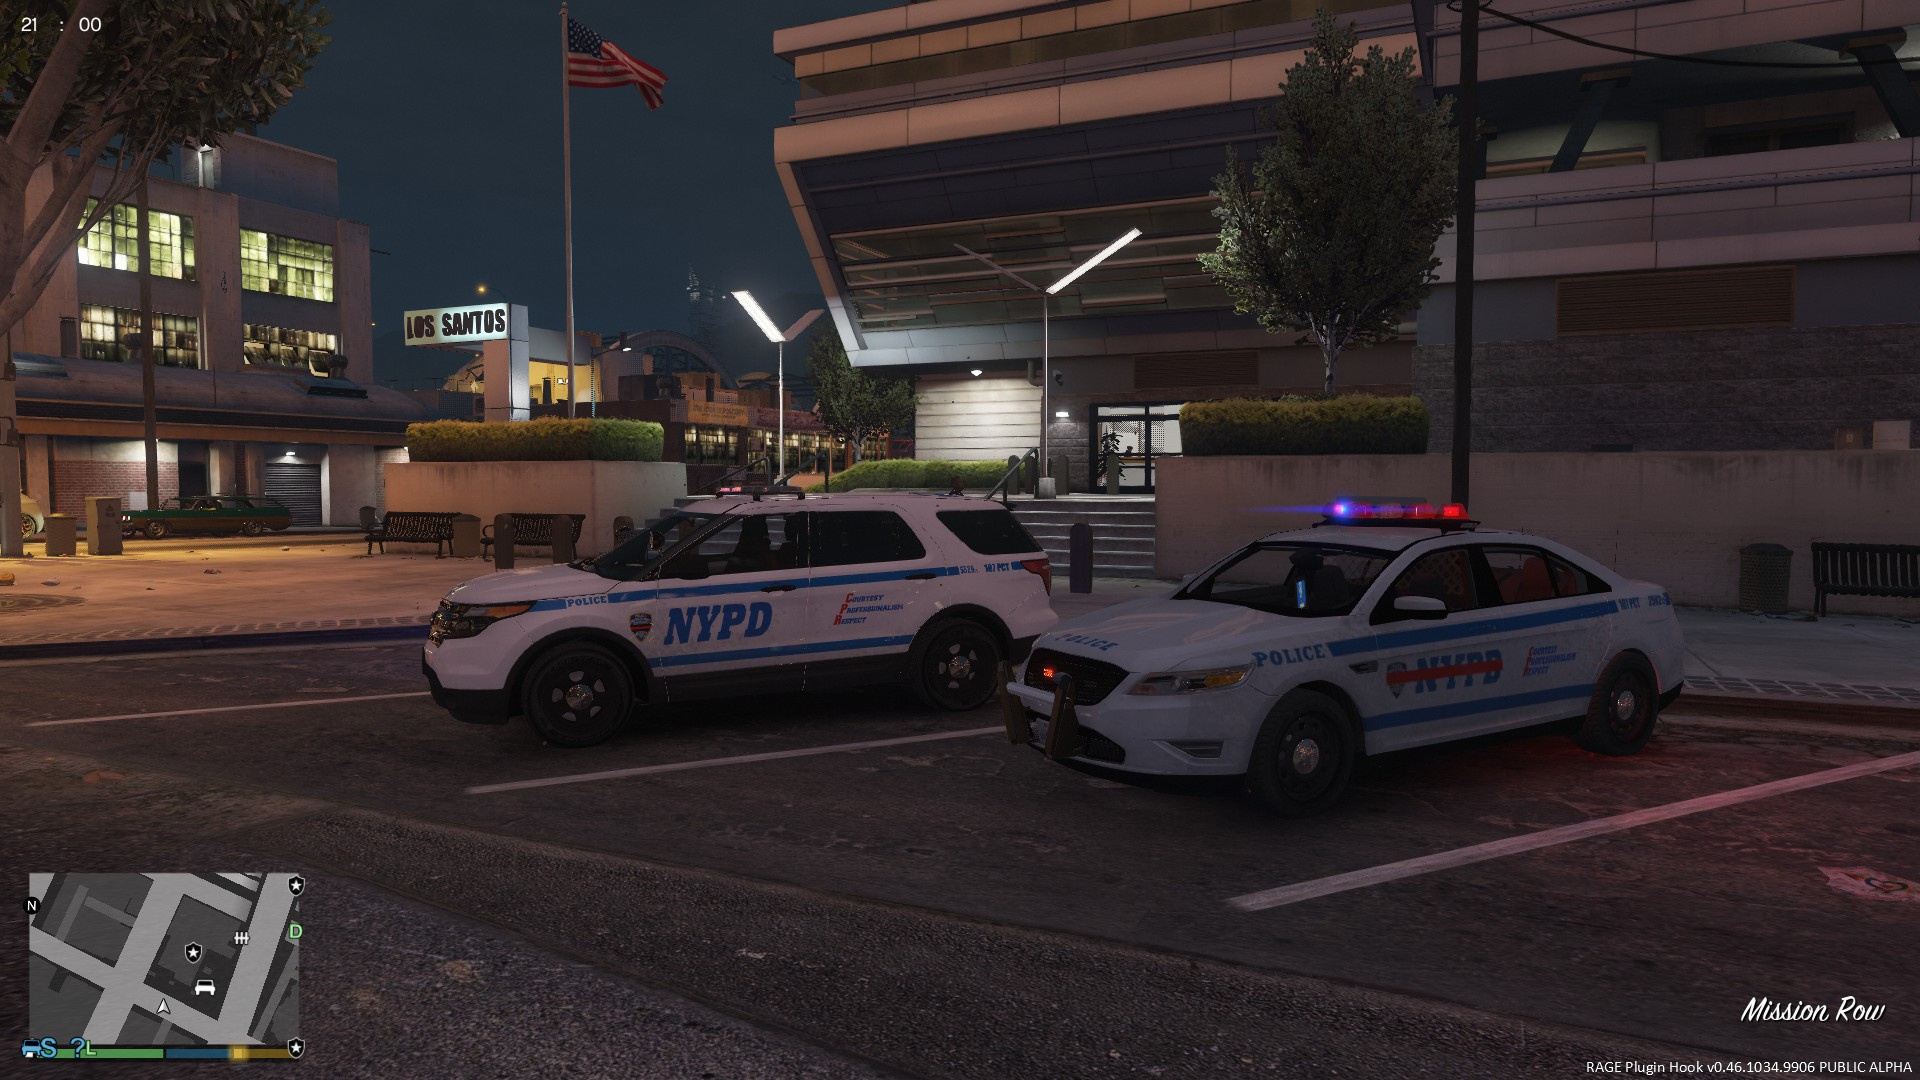 NYPD Remembers Fallen FDNY Hero Pack - GTA5-Mods.com